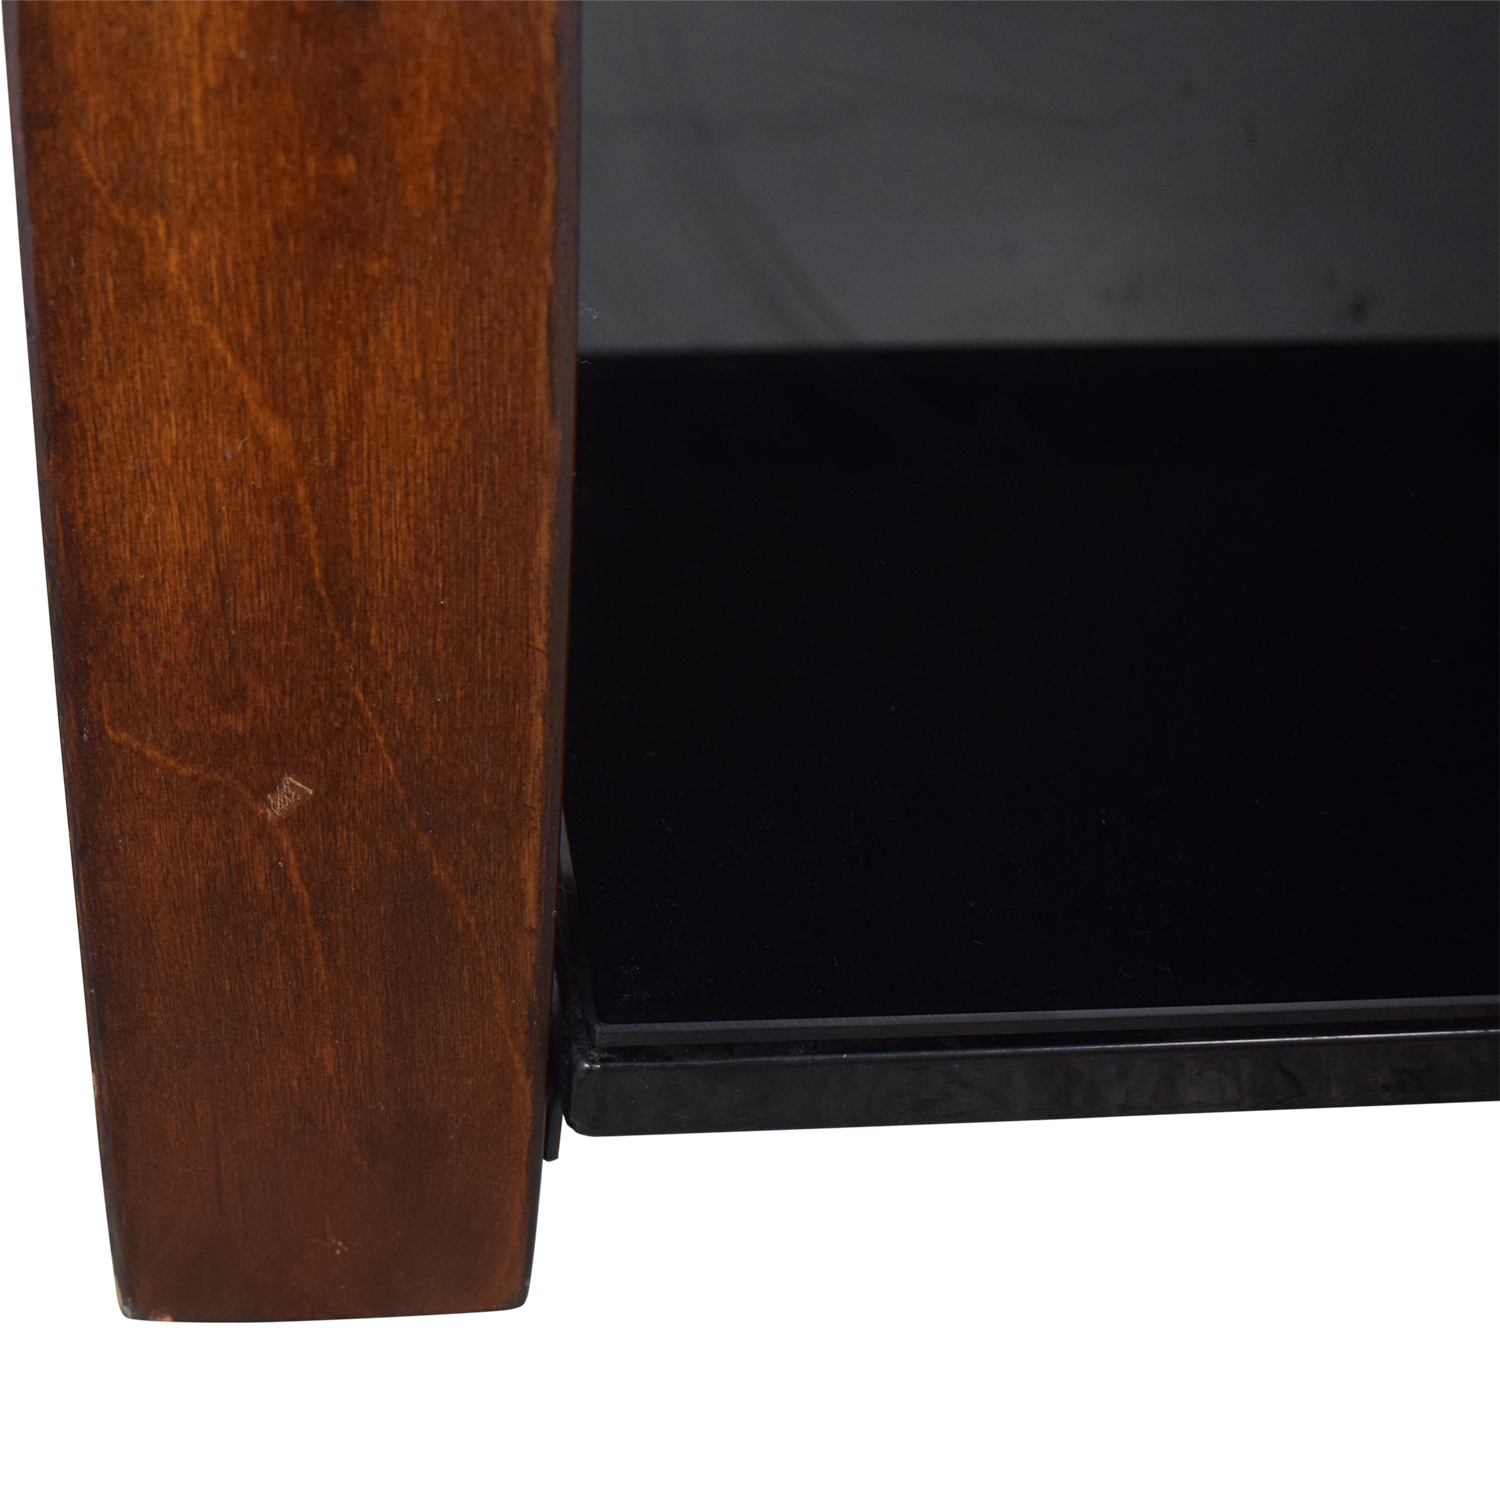 Whalen Furniture Whalen Furniture Black Glass and Wood Entertainment Center used